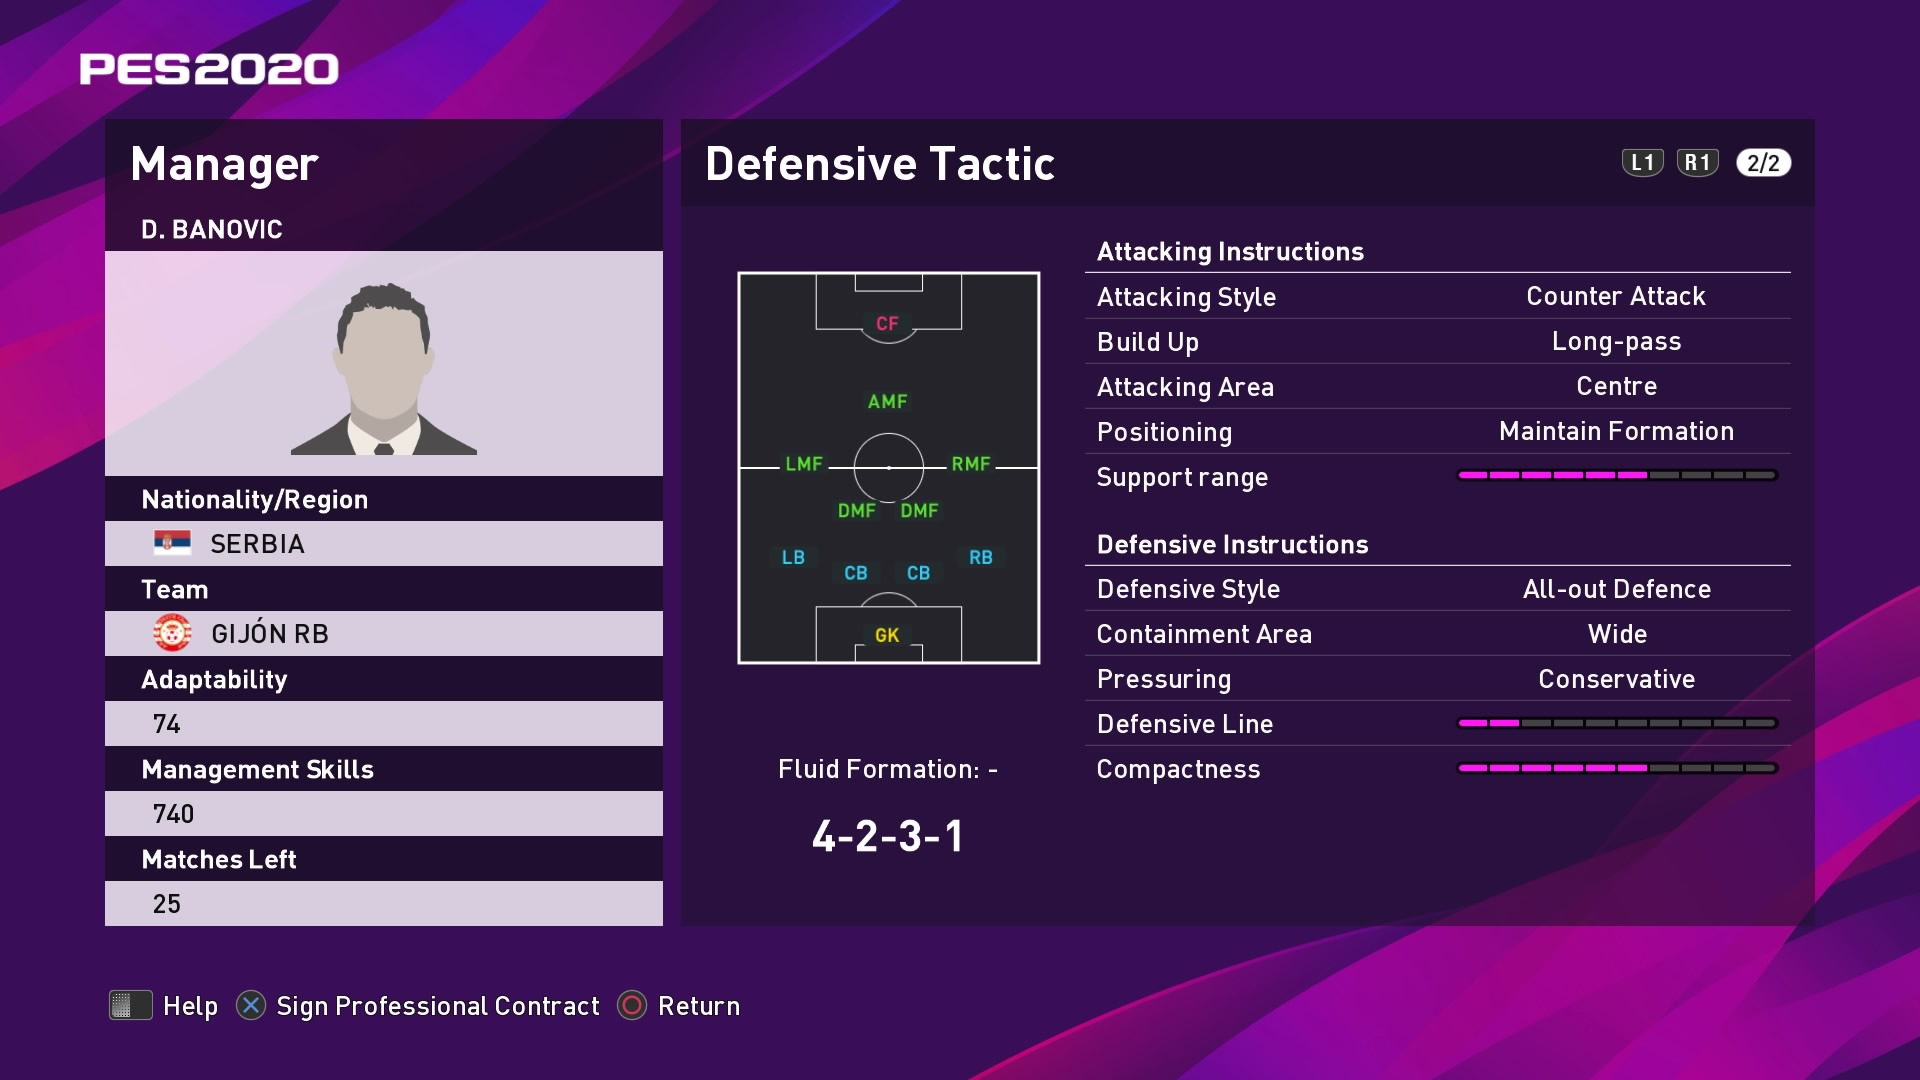 D. Banovic (Miroslav Đukić) Defensive Tactic in PES 2020 myClub